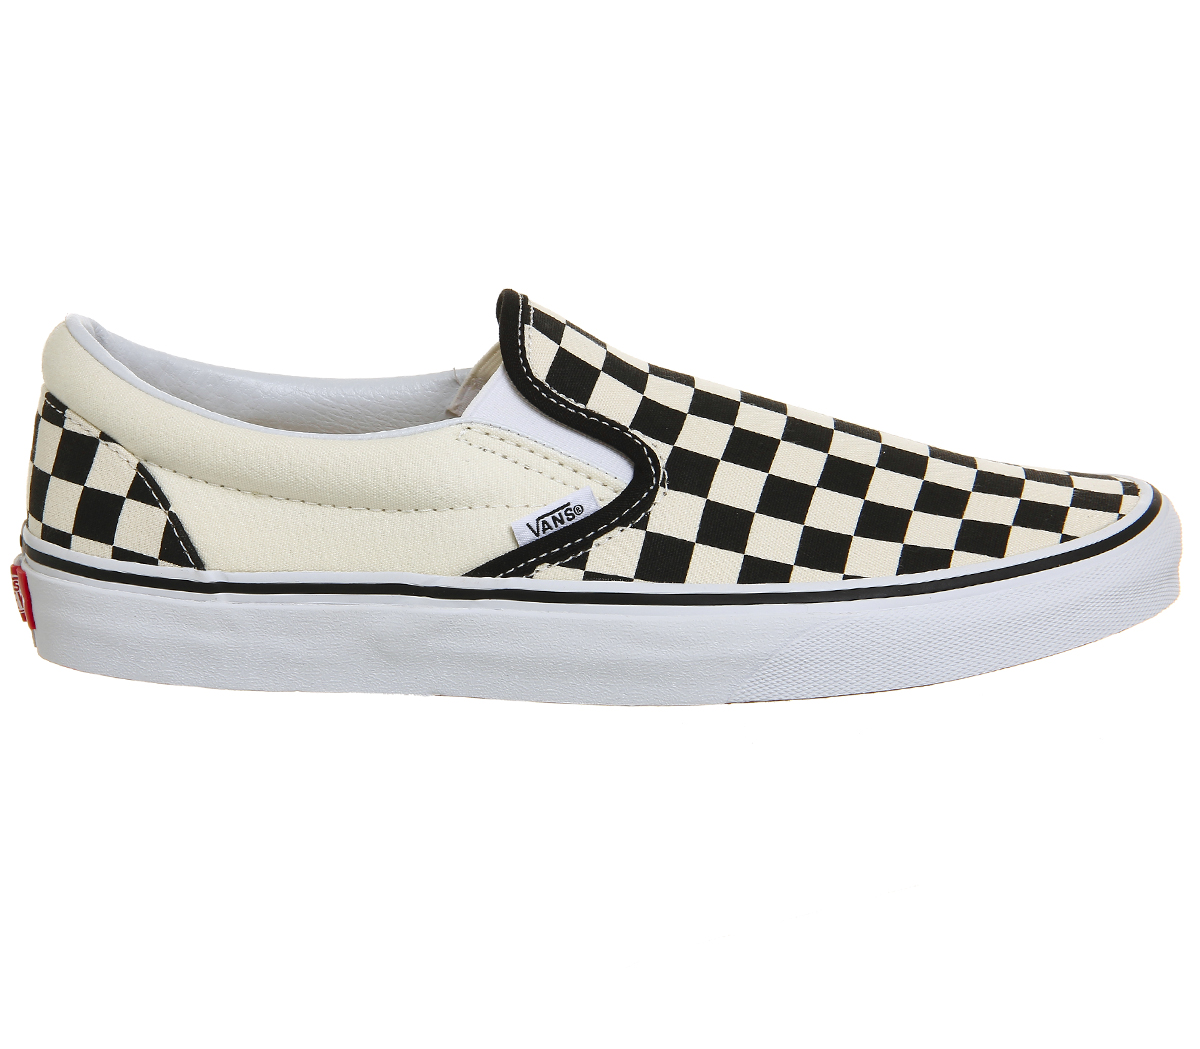 Sentinel Mens Vans Classic Slip On Trainers Black White Check Trainers Shoes b8a5bf42e